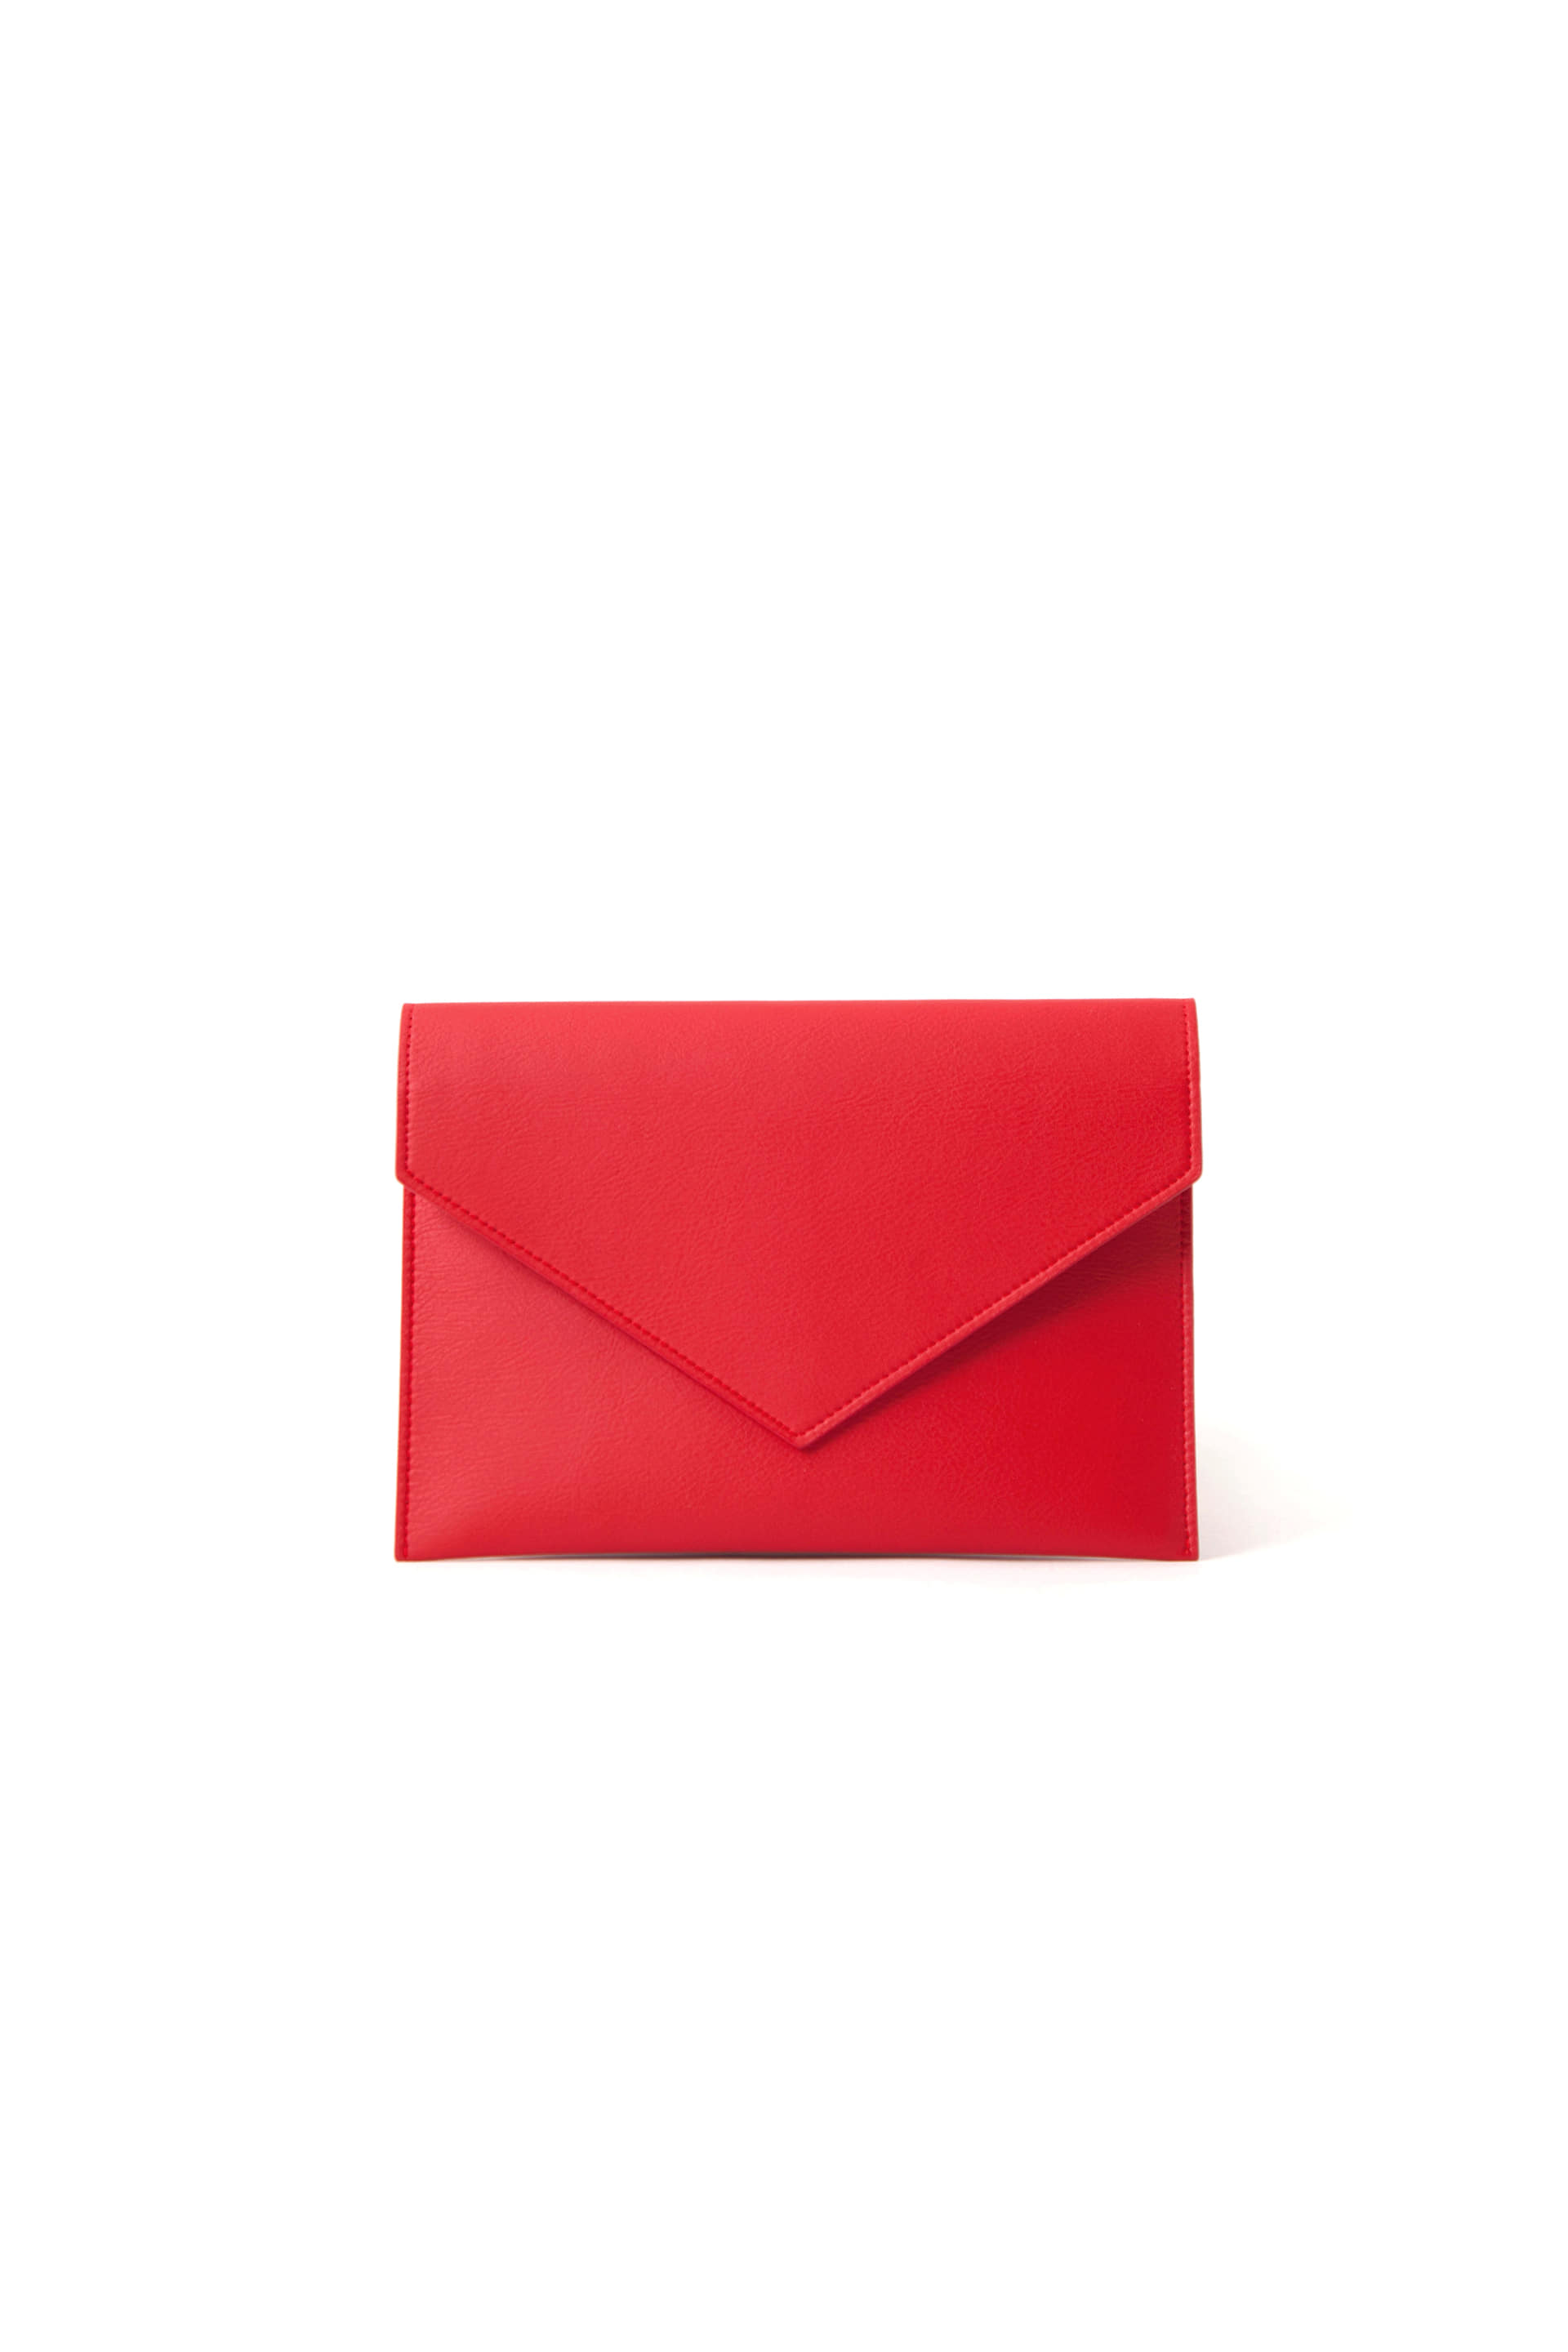 COSMETIC CLUTCH 06 Red